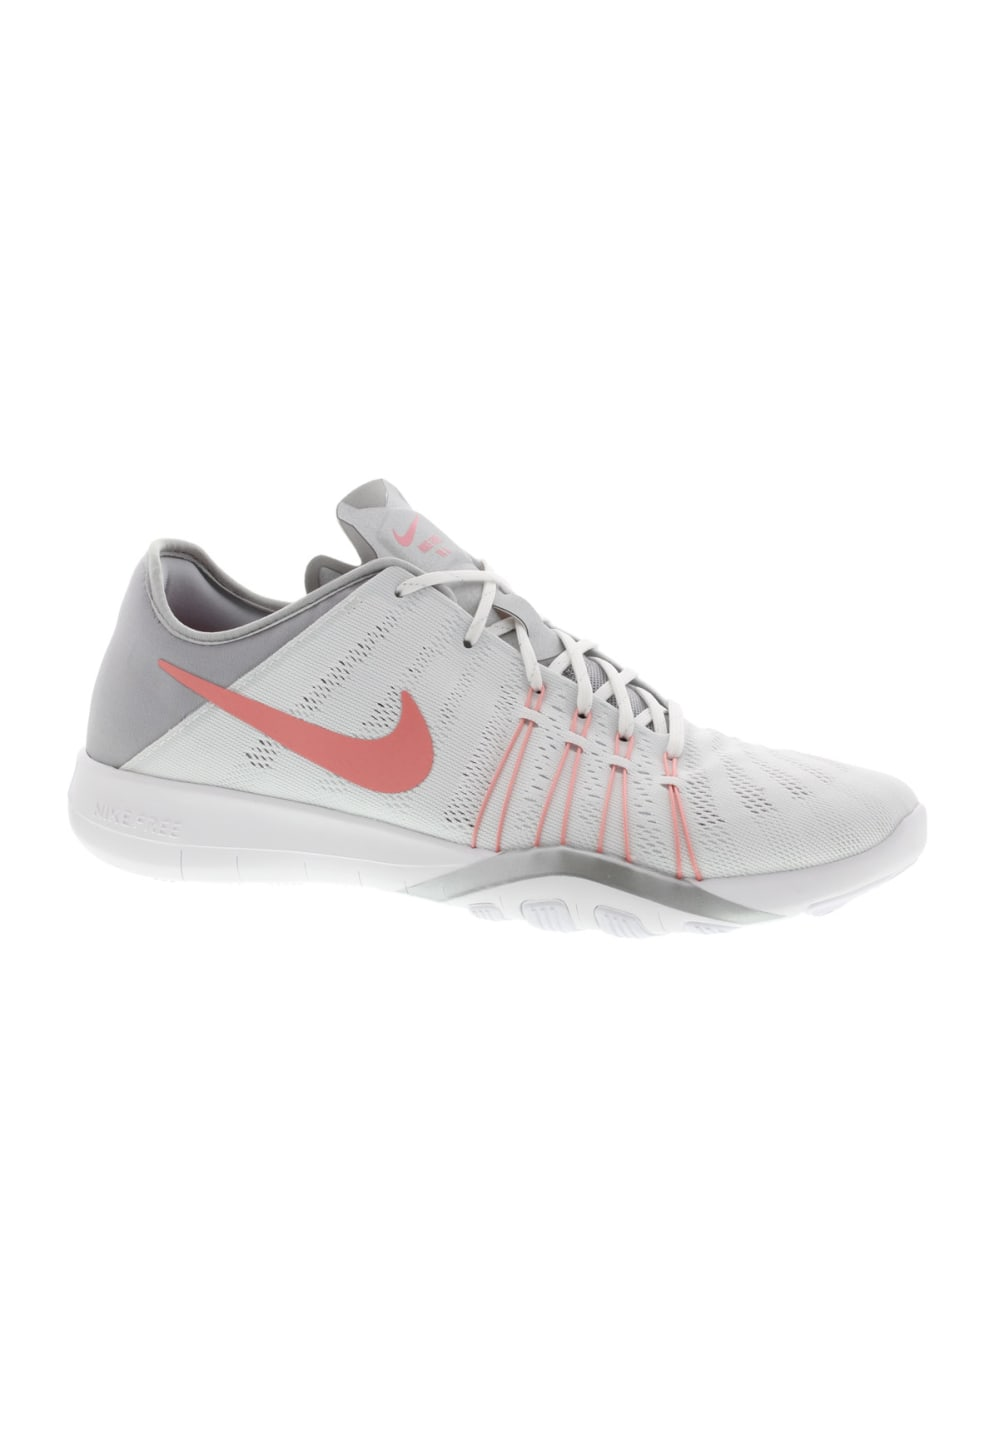 revendeur 90b32 89f5d Nike Free TR 6 - Fitness shoes for Women - Grey